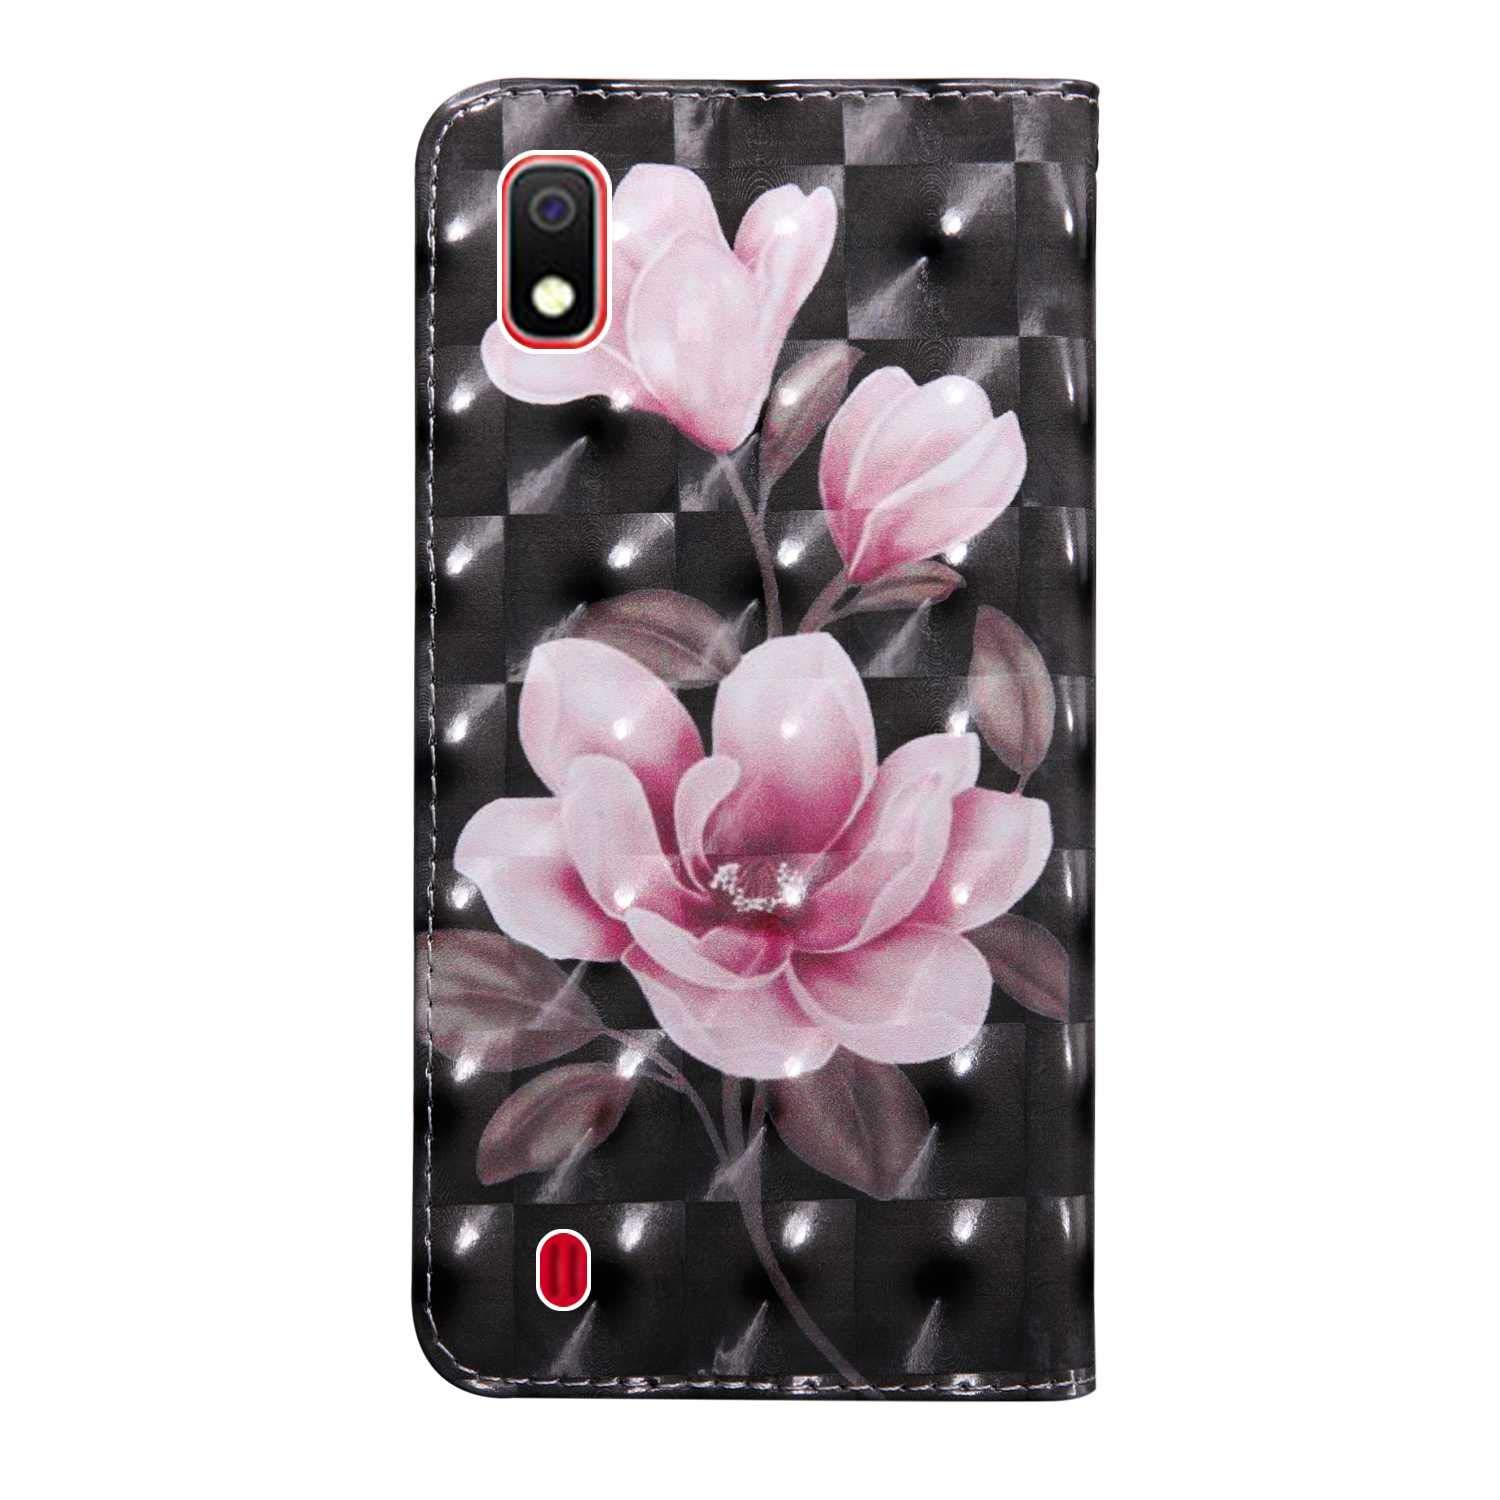 PU Leather Book Style Cover with Free Tempered Glass Screen Protector Bear Village/® Galaxy A10 Case 3D Pattern Design Wallet Flip Case for Samsung Galaxy A10 #9 Tiger